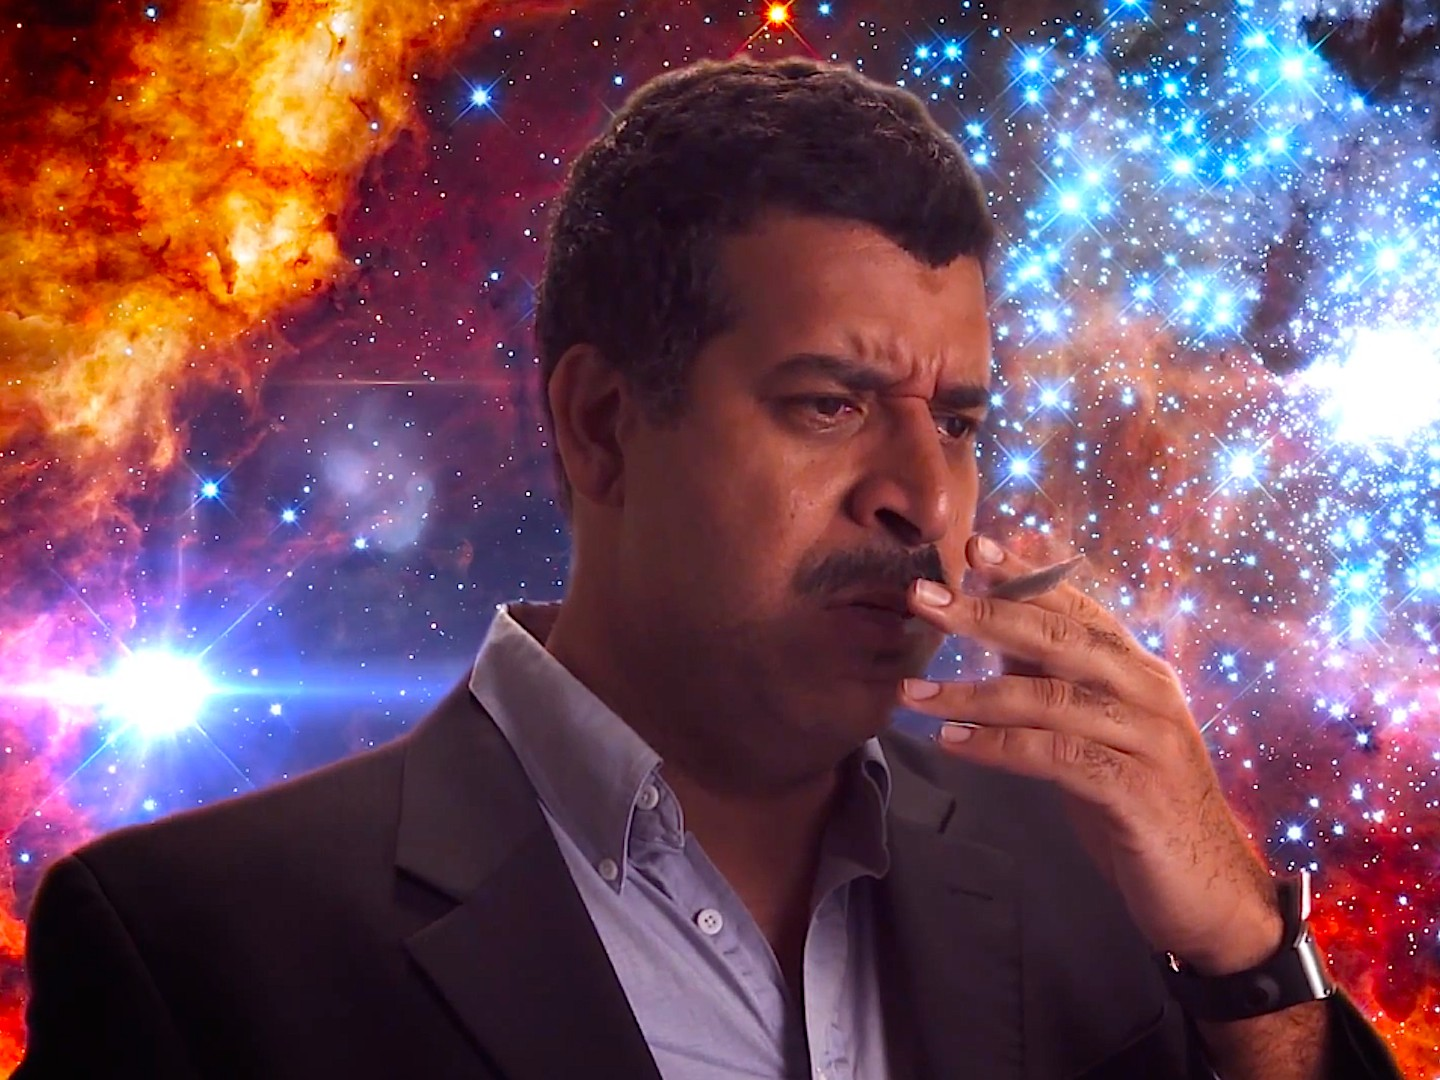 cosmos-on-weed Neil deGrasse Tyson